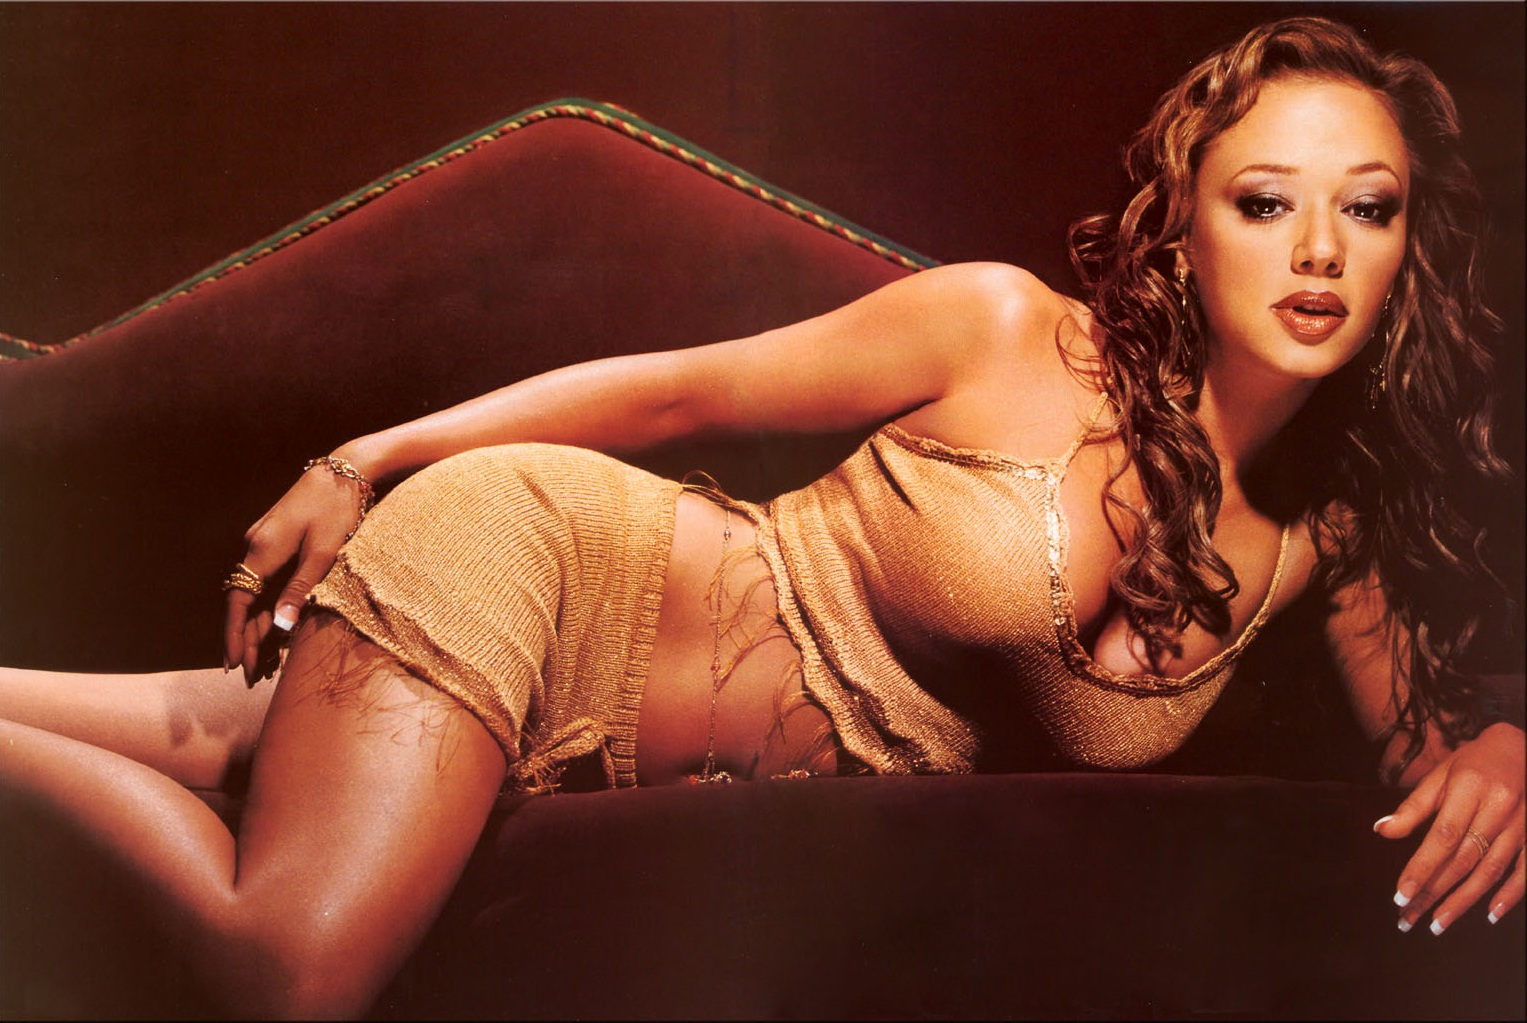 leah-remini-sexiest